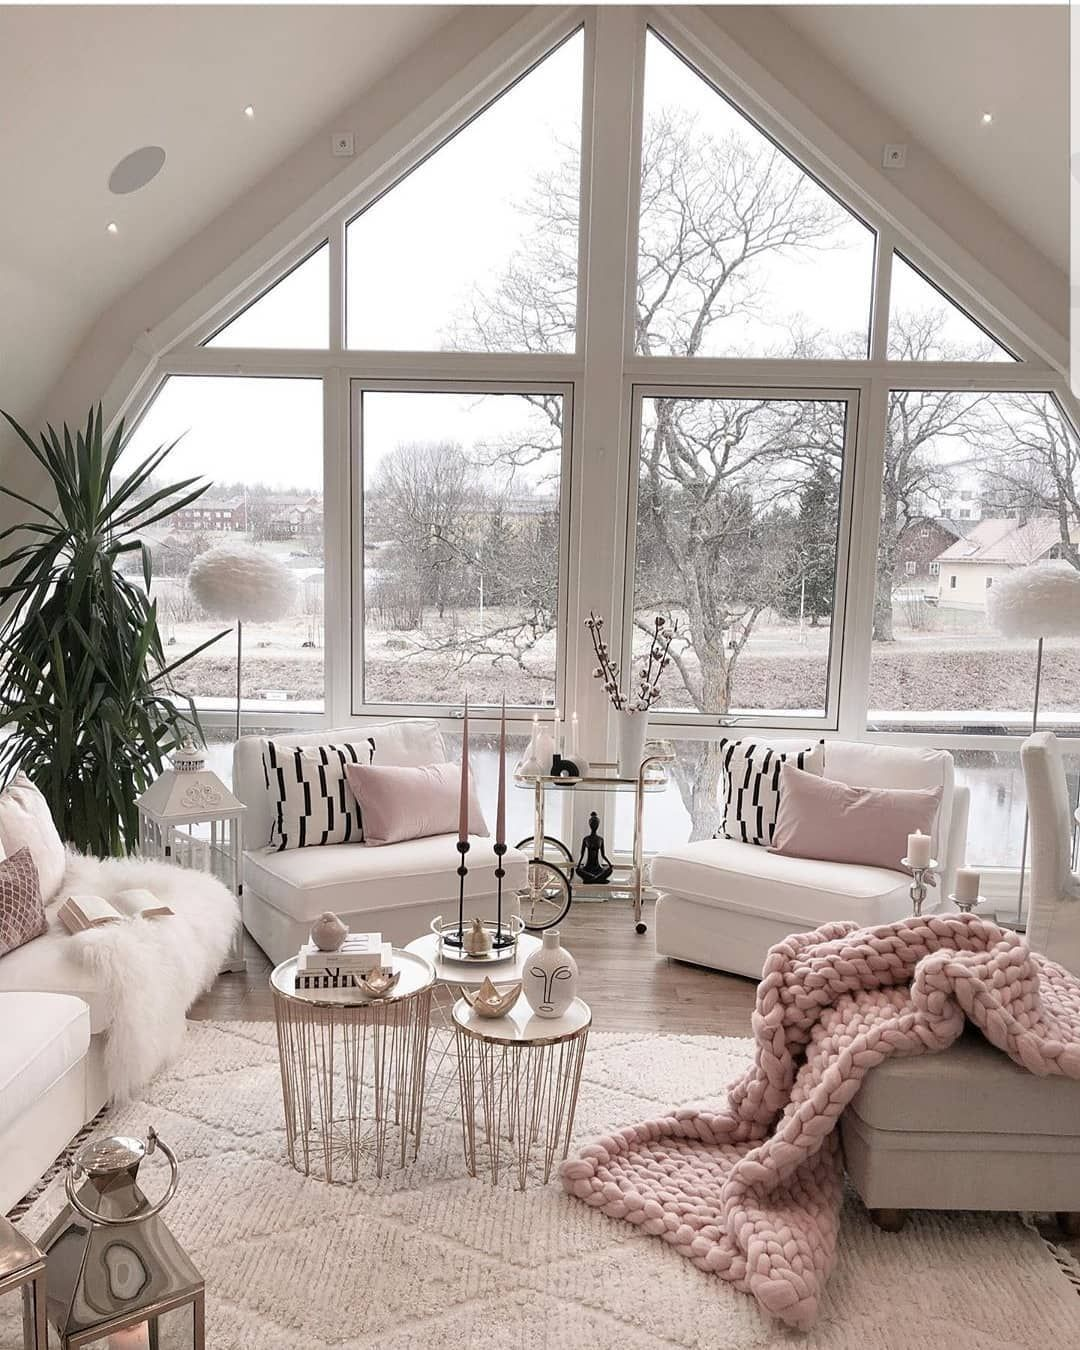 25 Modern Rustic Living Room Ideas You Must Try Buzzkee Home Inspire Me Home Decor Modern Rustic Living Room